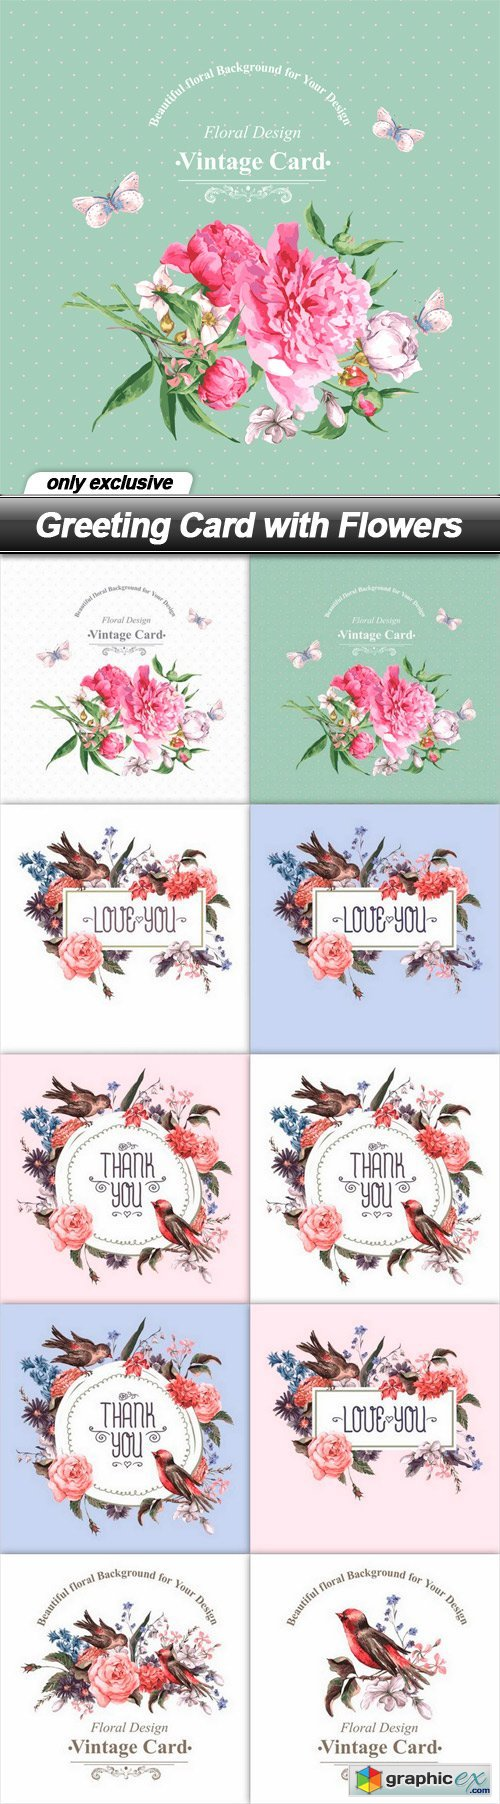 Greeting Card with Flowers - 10 EPS